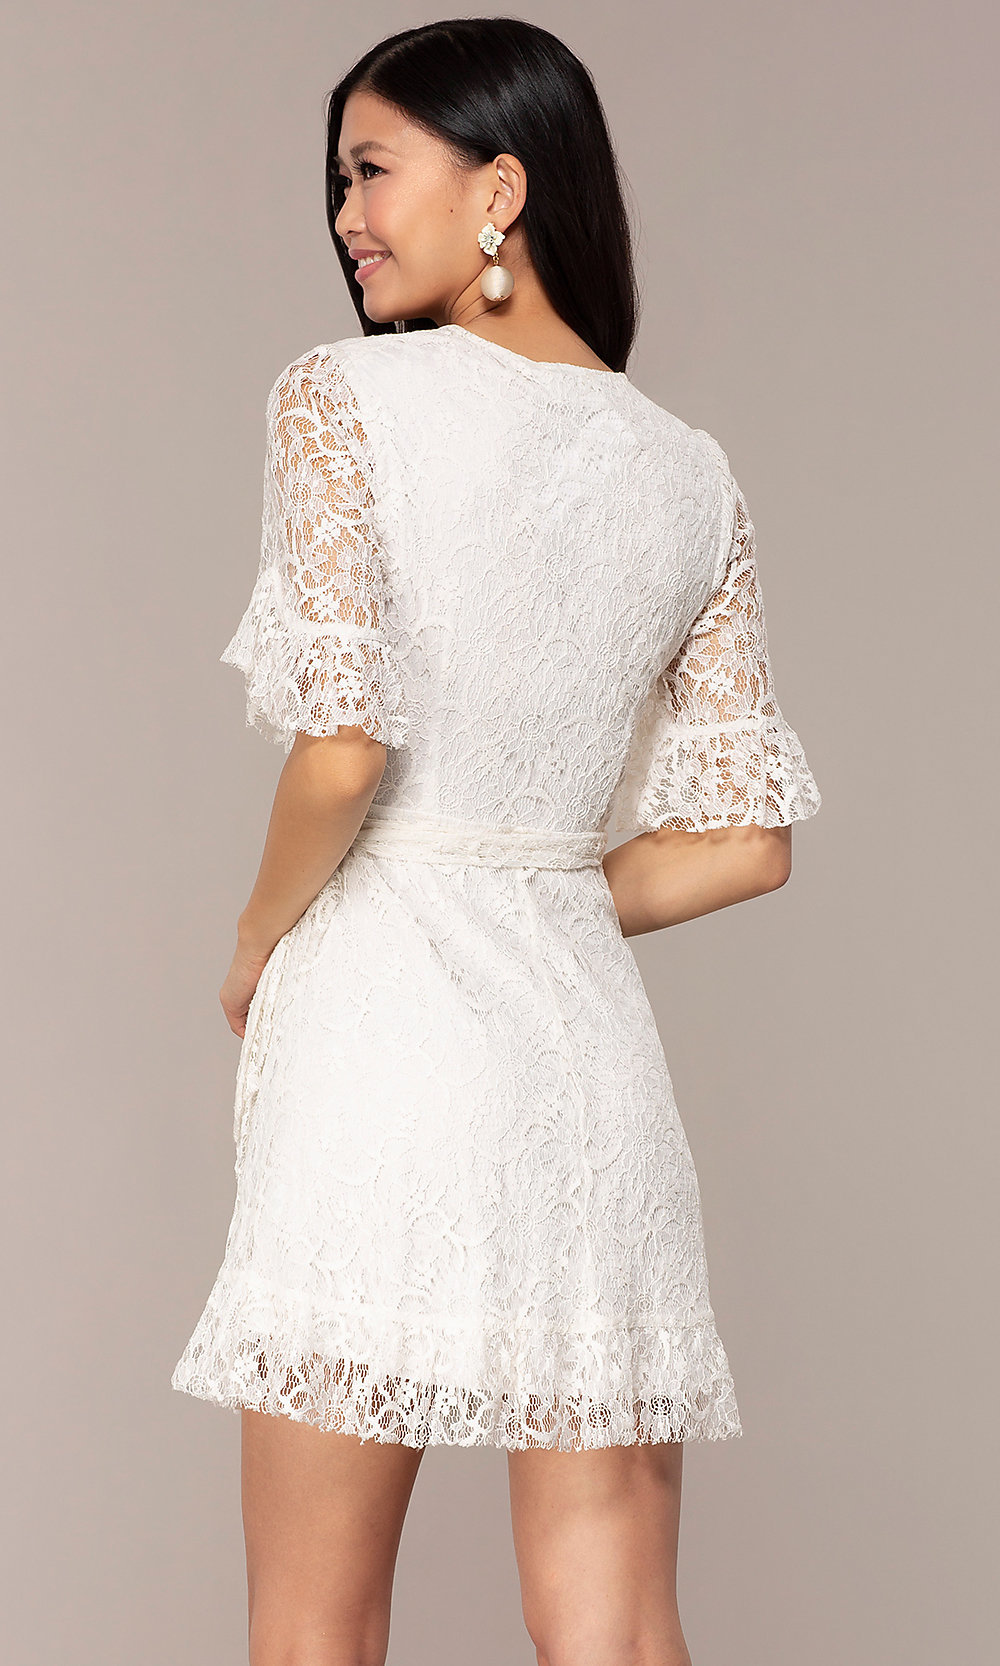 266025395fc9 Image of short lace wrap off-white graduation party dress. Style: AC-. Tap  to expand